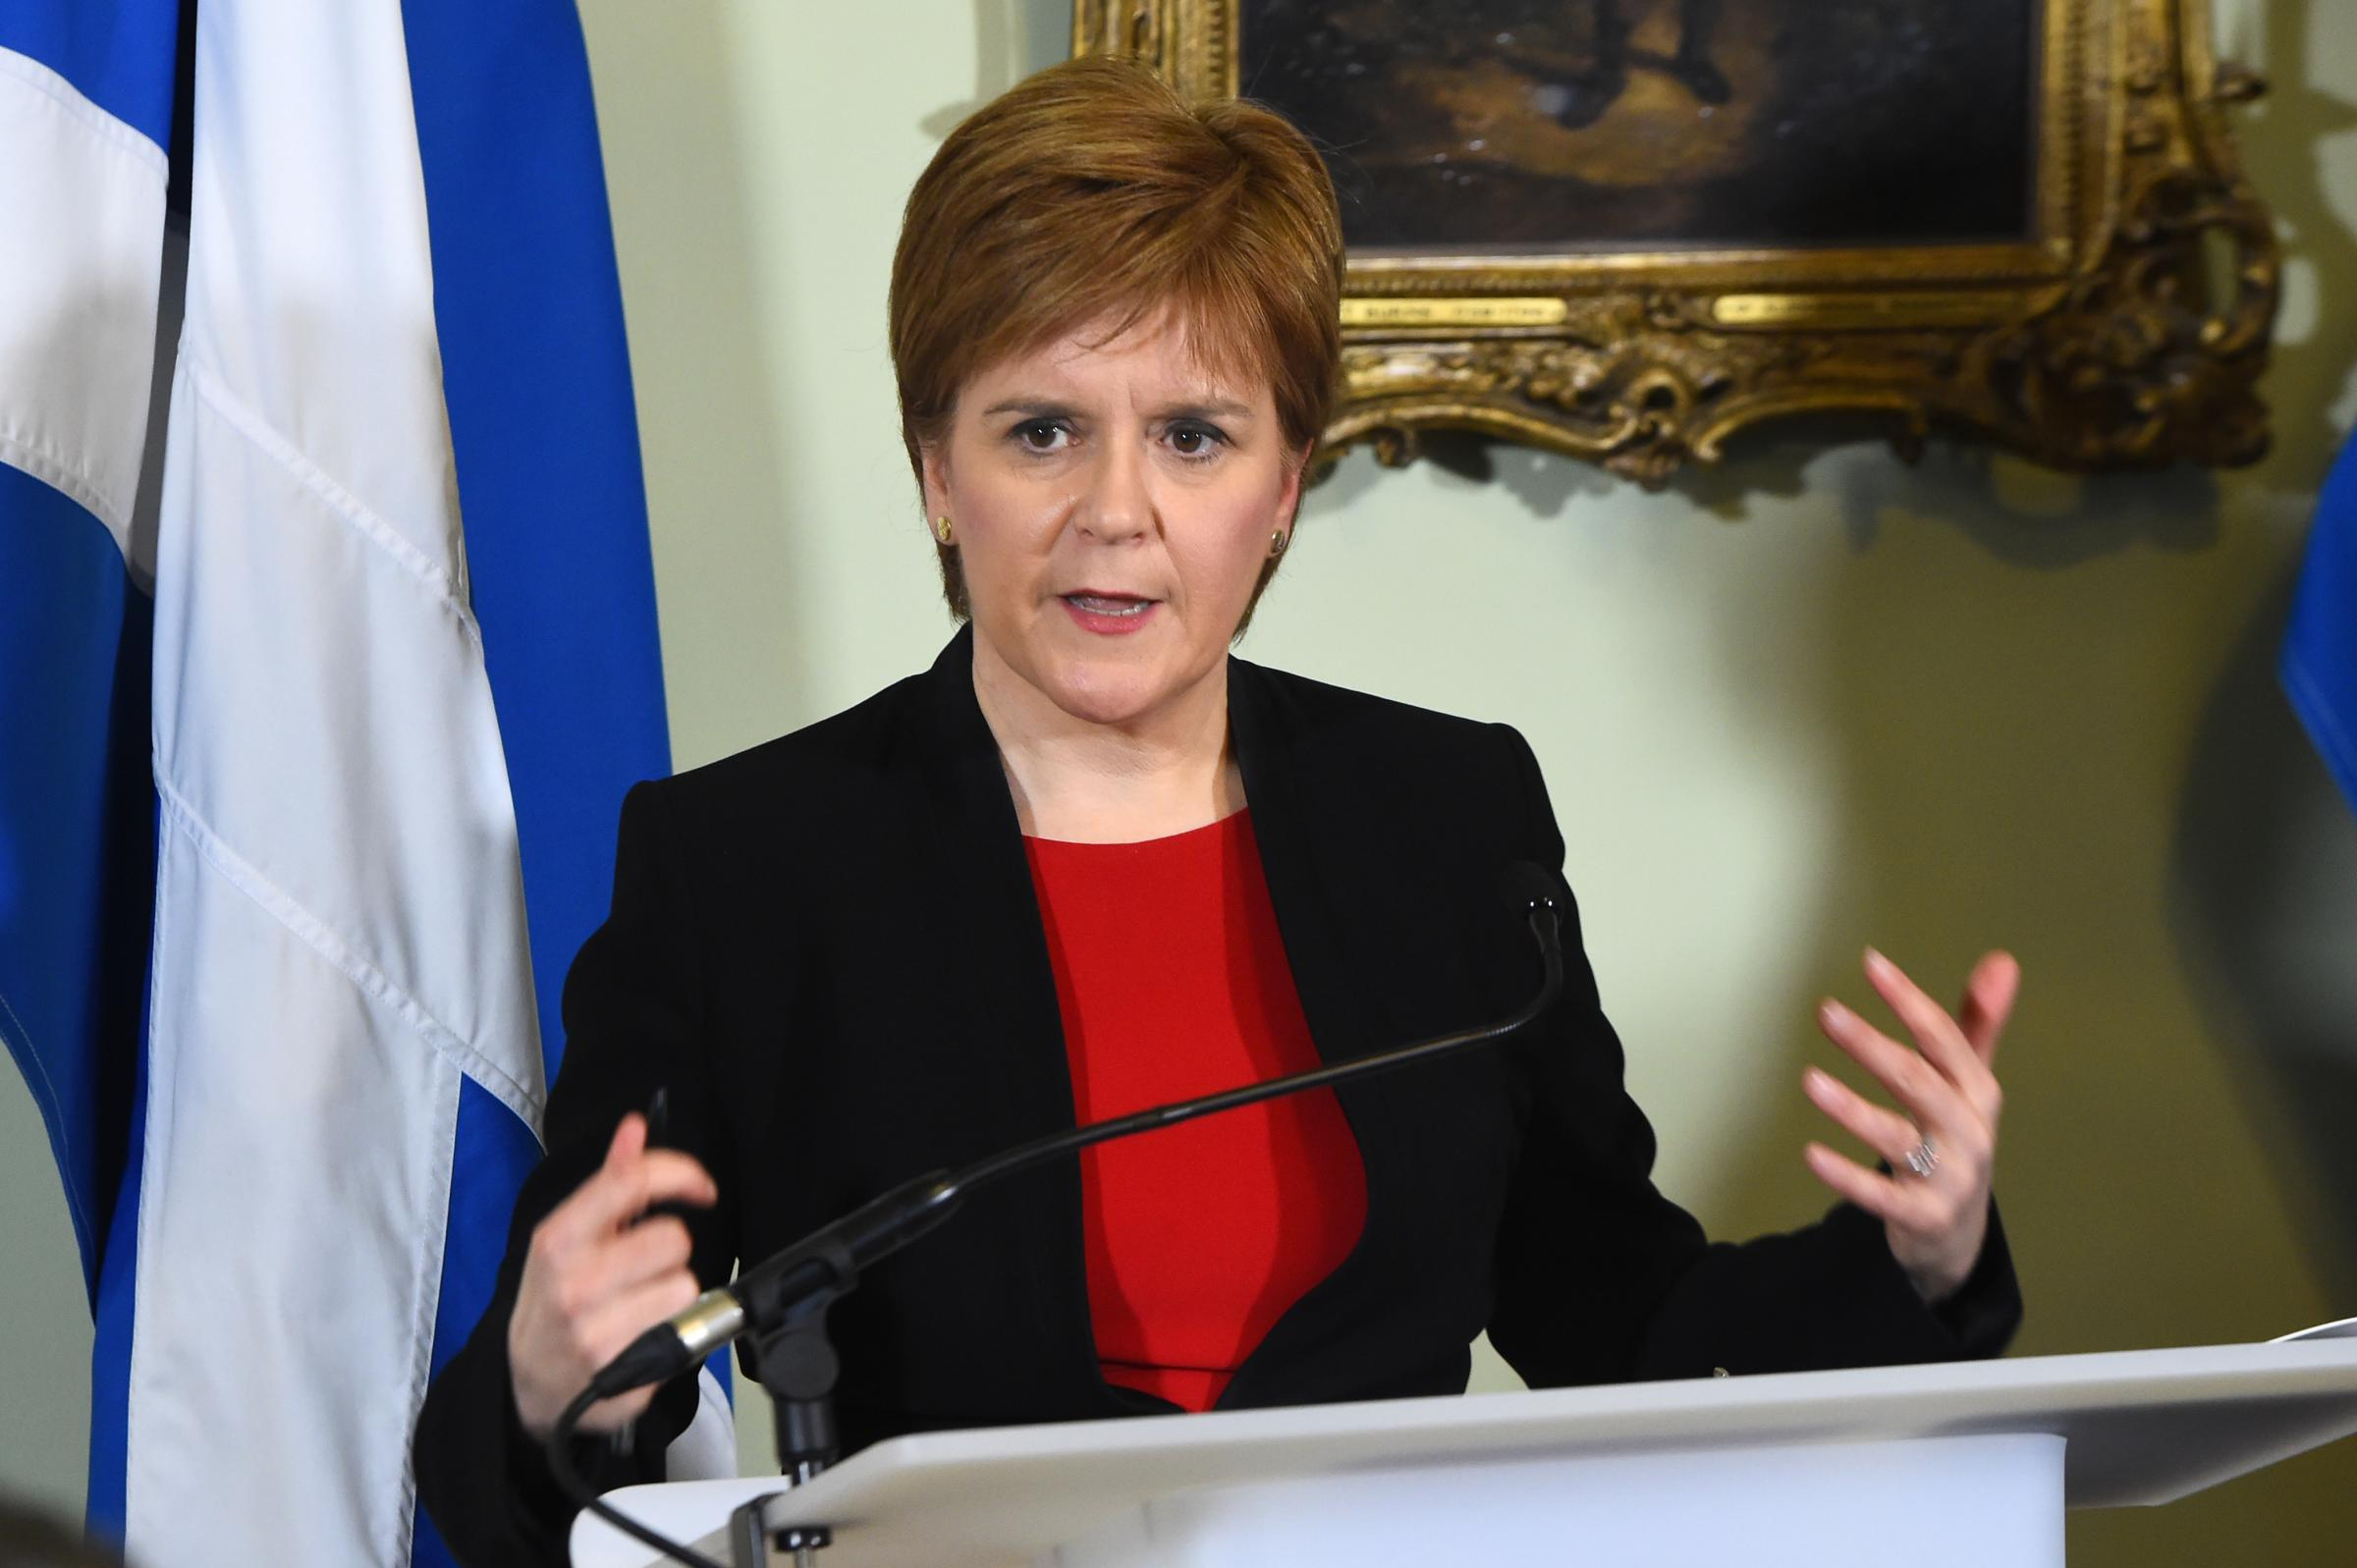 Nicola Sturgeon: Scotland 'should be a driving force within the EU'